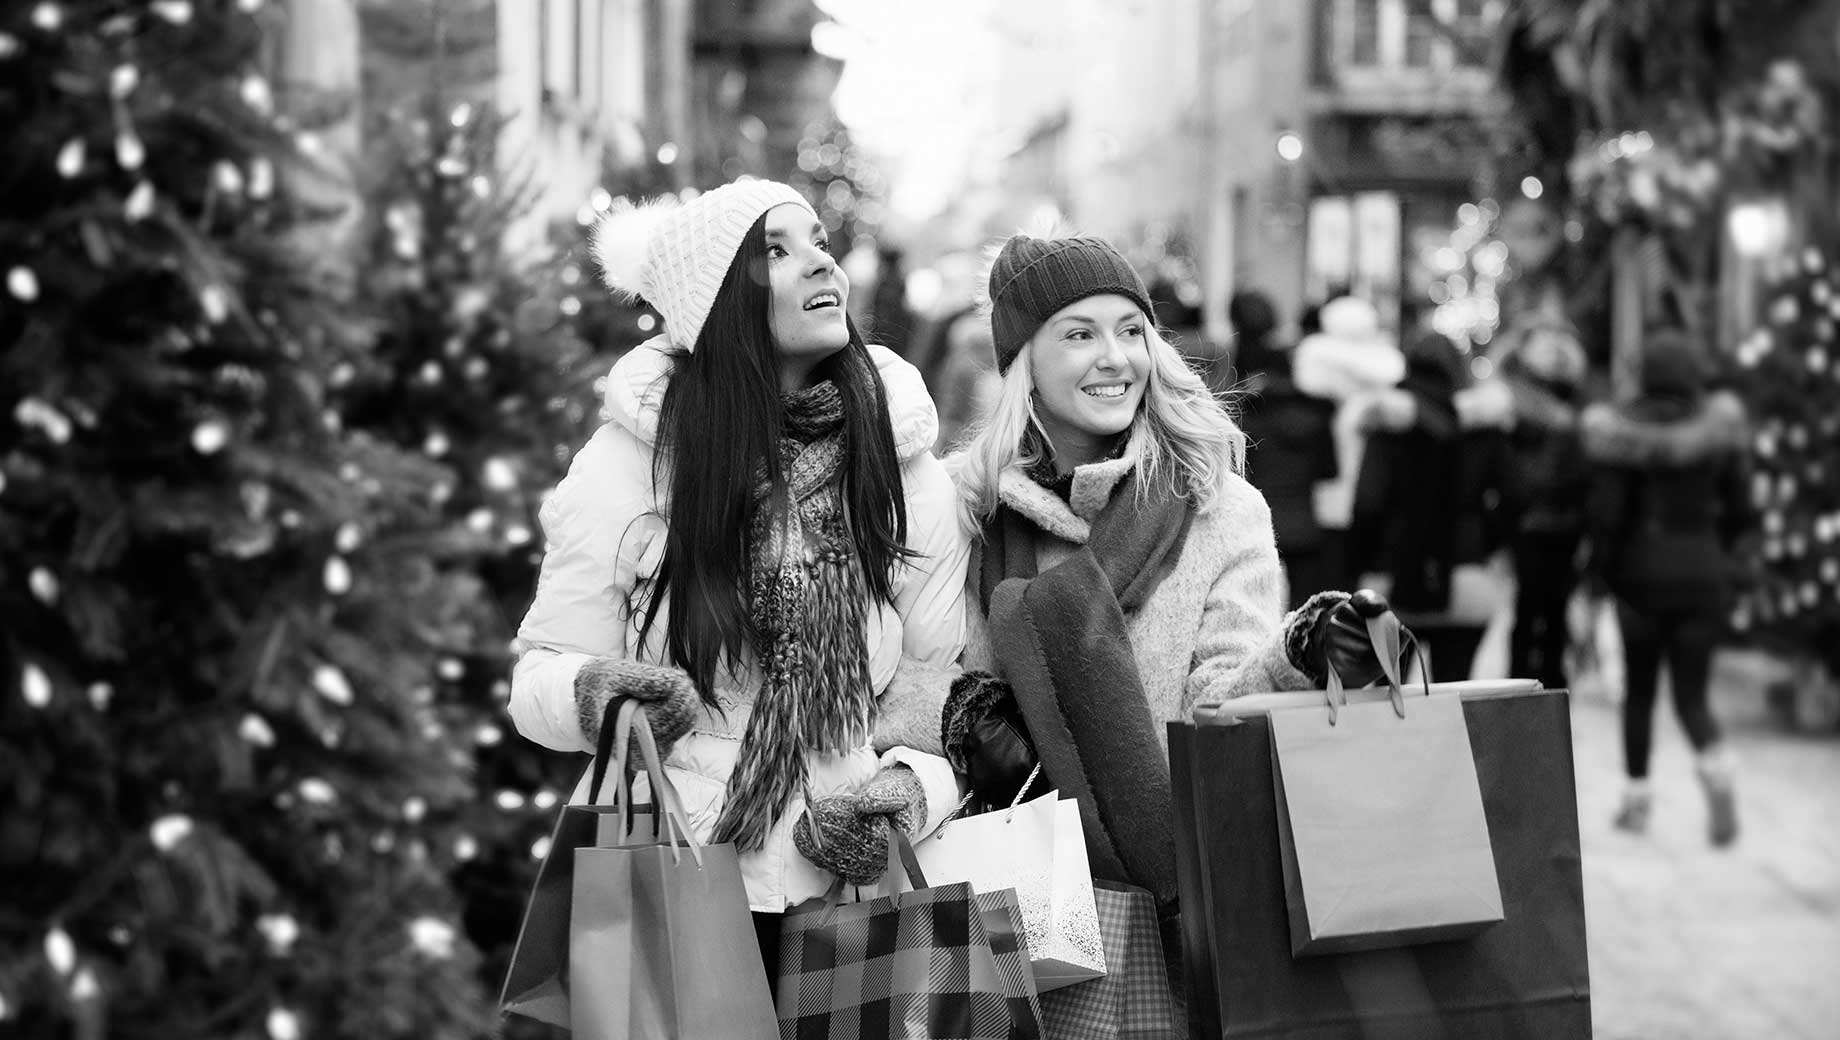 Christmas Spending Intentions Remain Strong